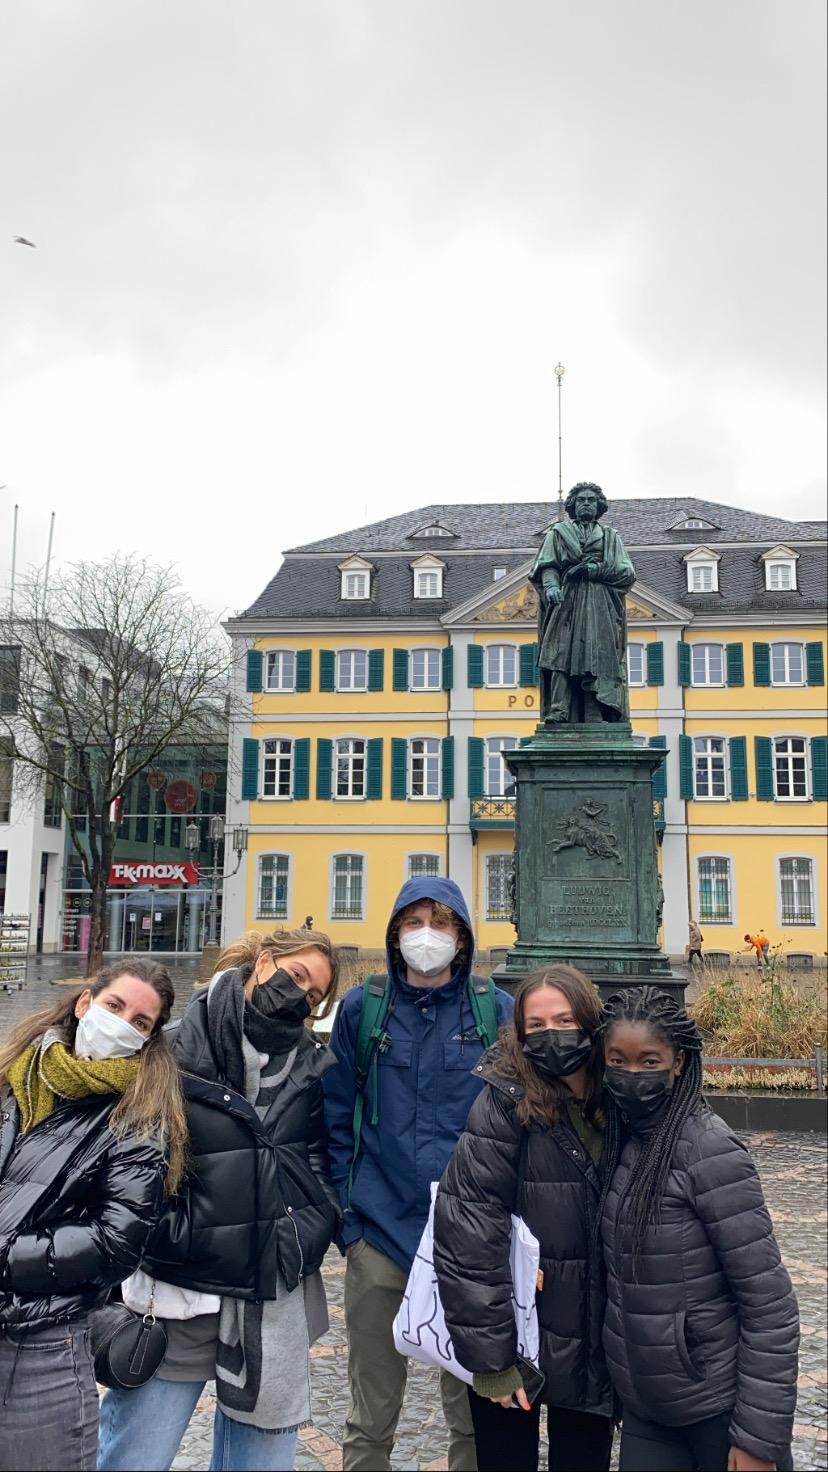 five people stand near statue, building and body of water while wearing face masks during daytime